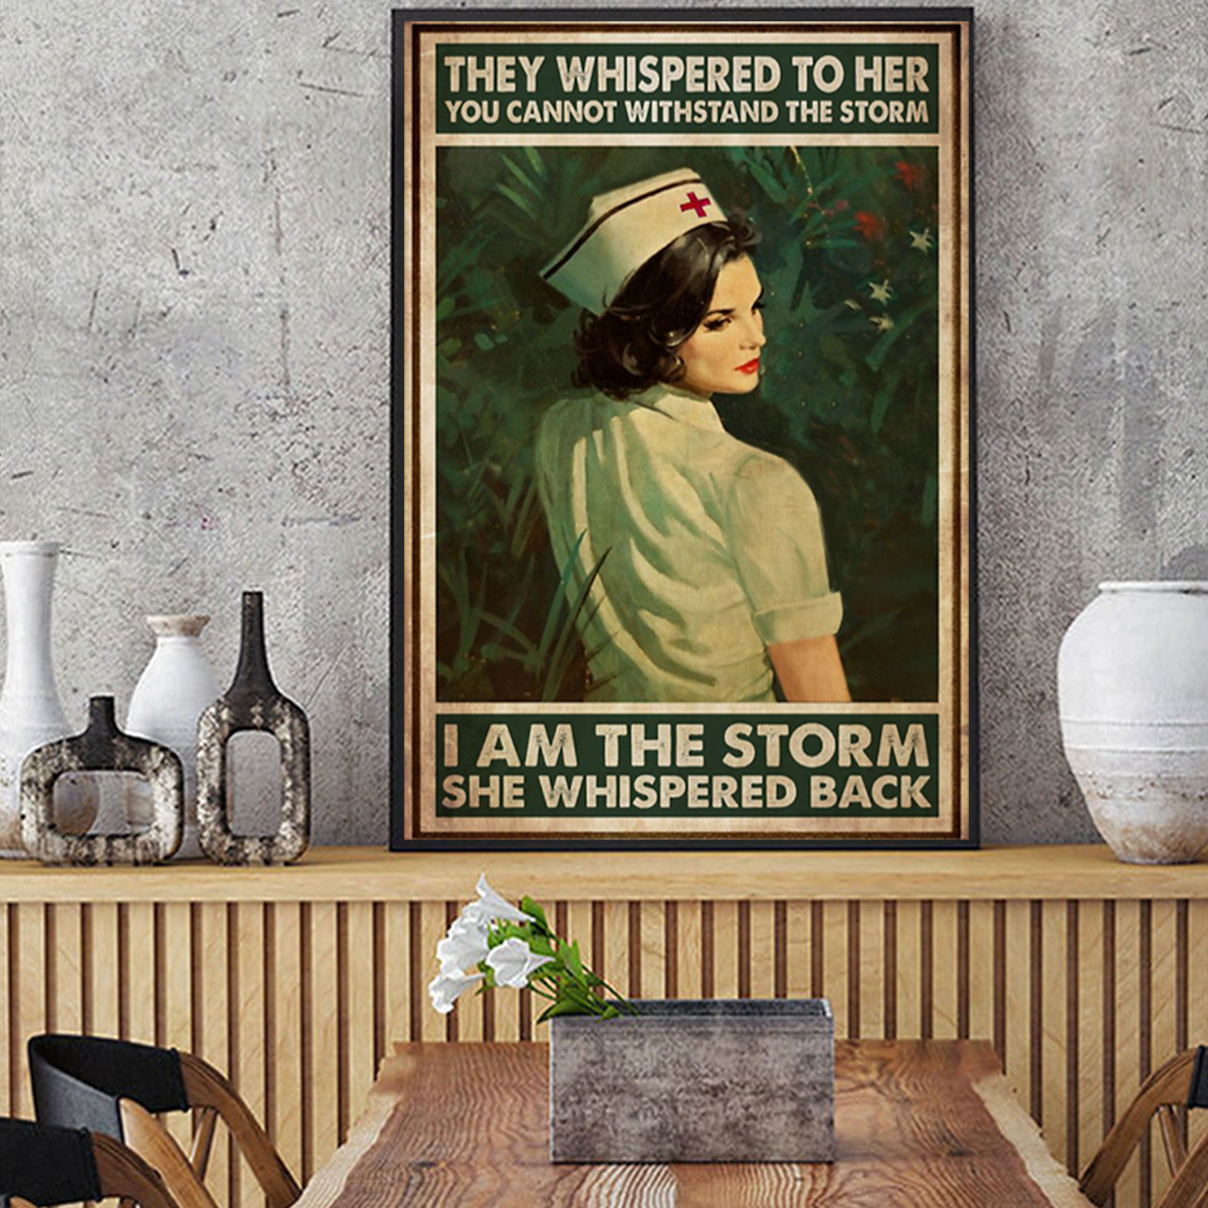 Nurse whispered to her you cannot withstand the storm poster A2